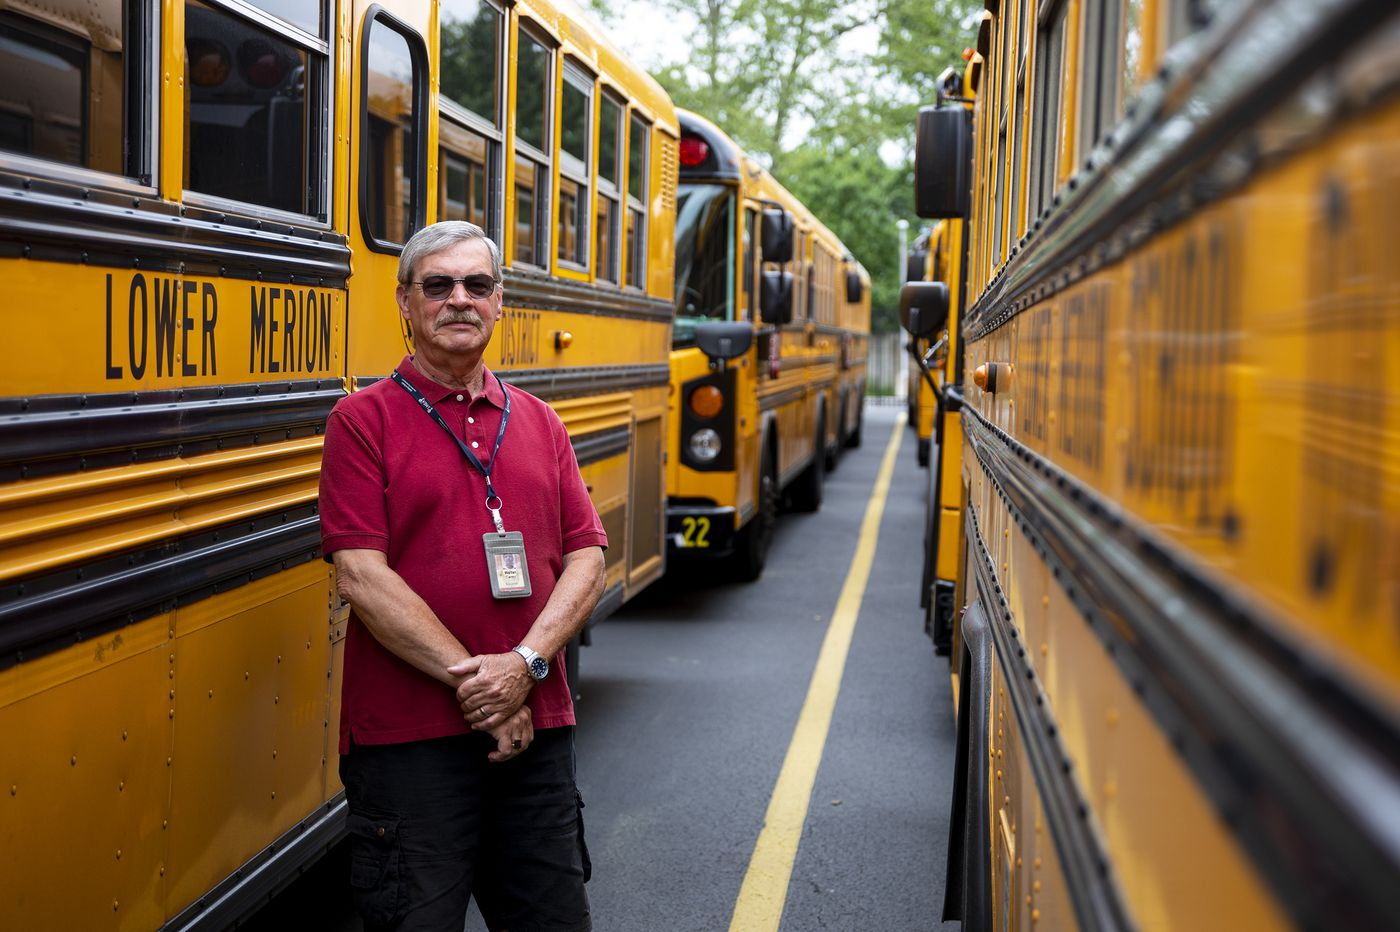 Retiring school bus driver wishes he could say goodbye to the students and families he has loved